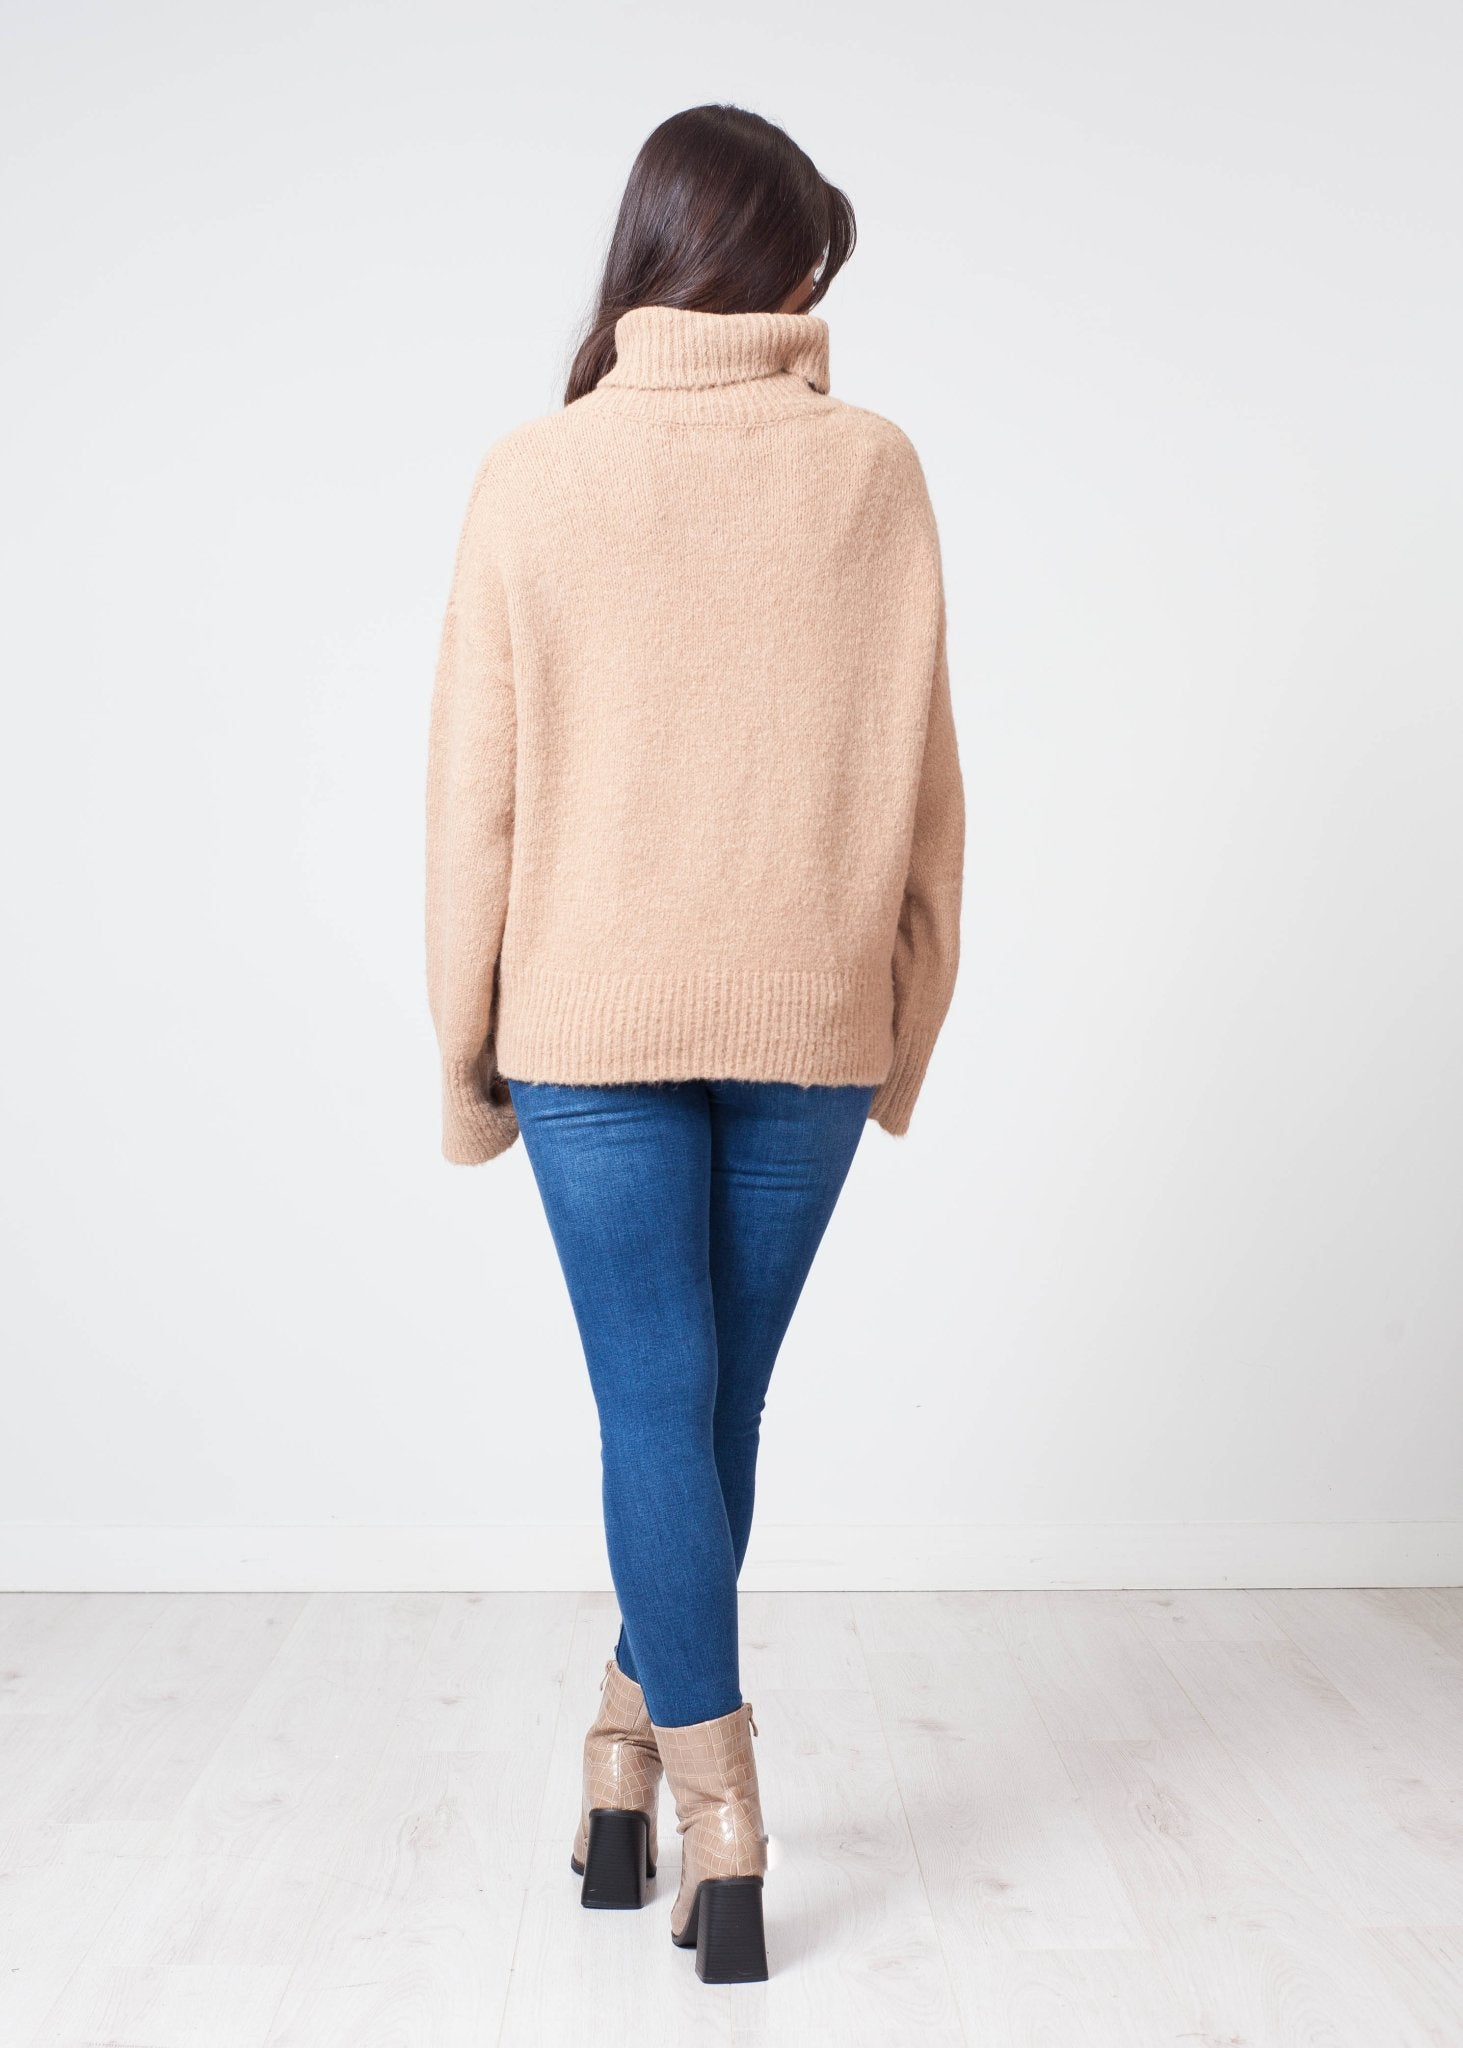 Priya Polo Neck With Heart In Tan - The Walk in Wardrobe